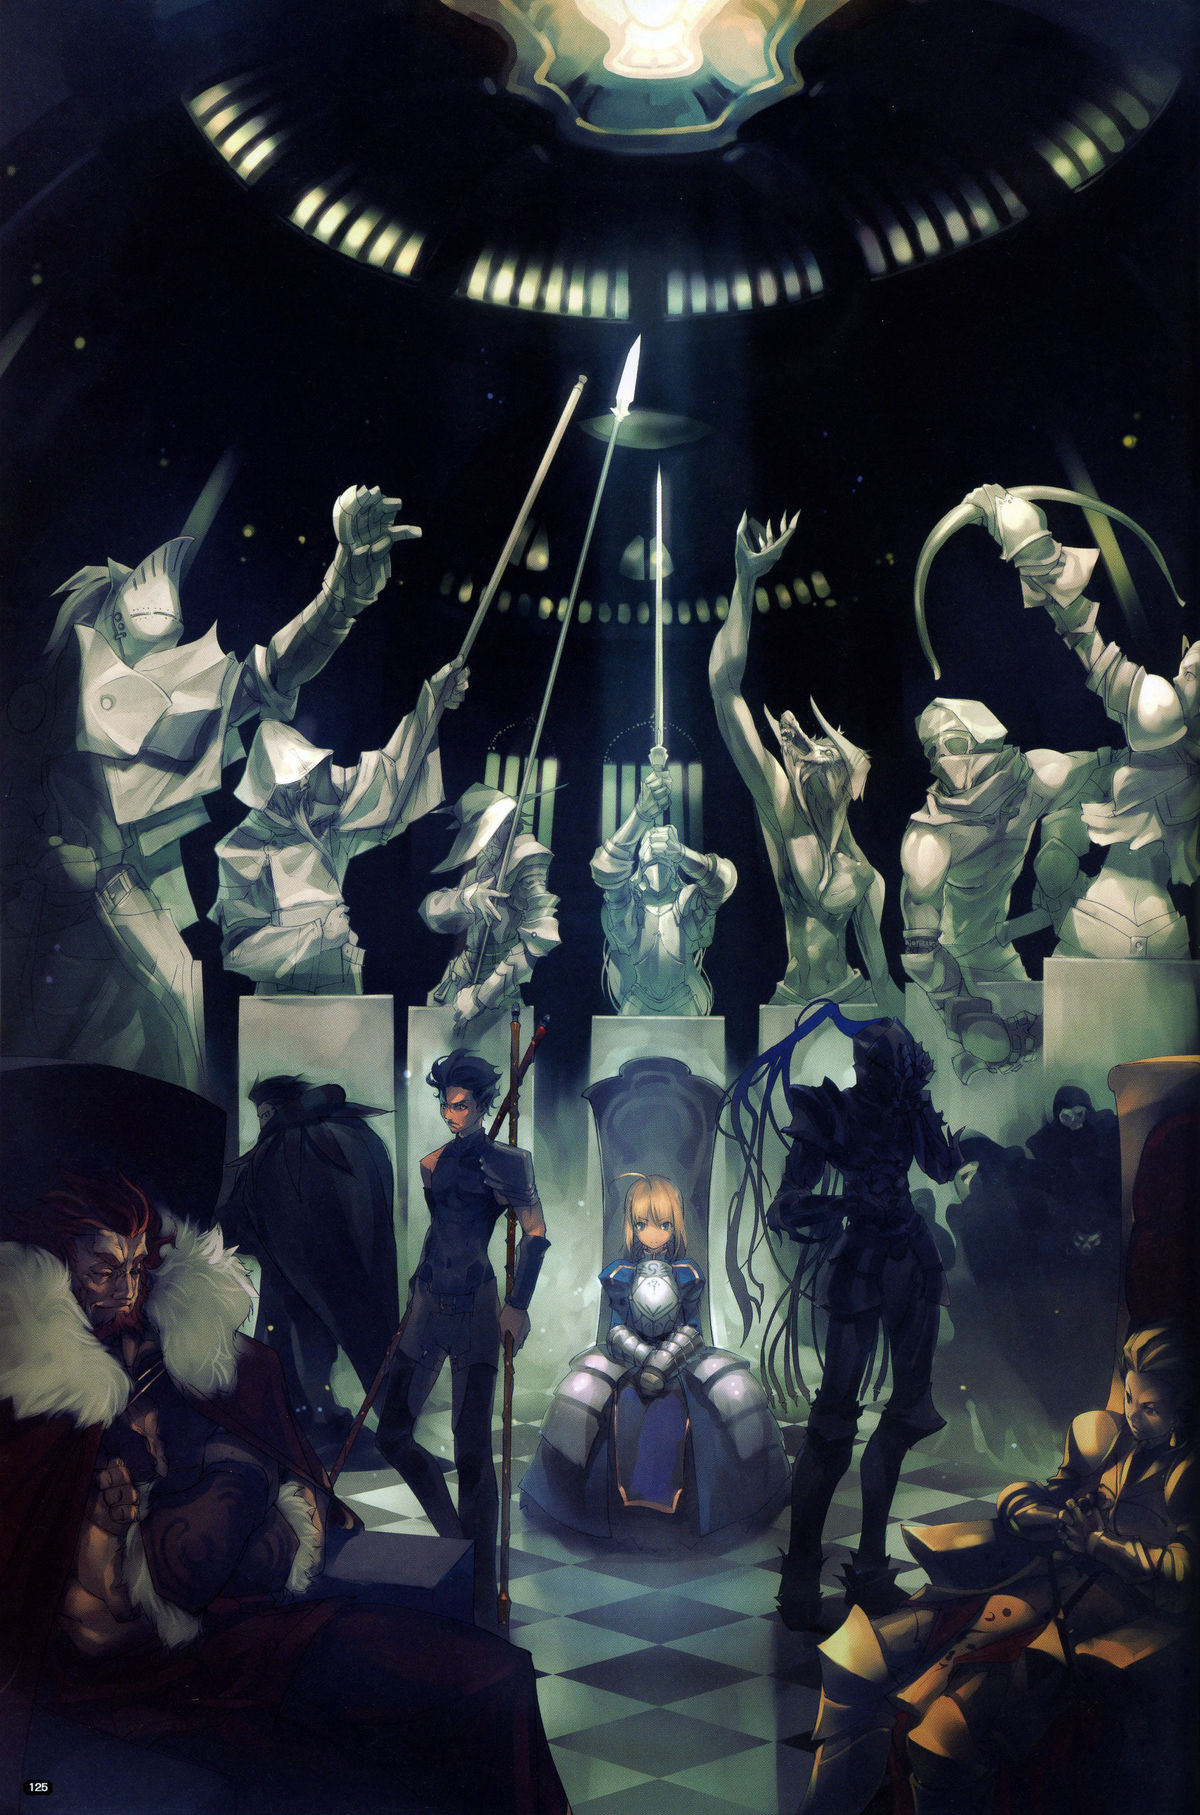 Let's see, Fate/Zero has just debuted and it was so impressive that ...: outakuya.wordpress.com/2011/10/10/fatezero-anime-review